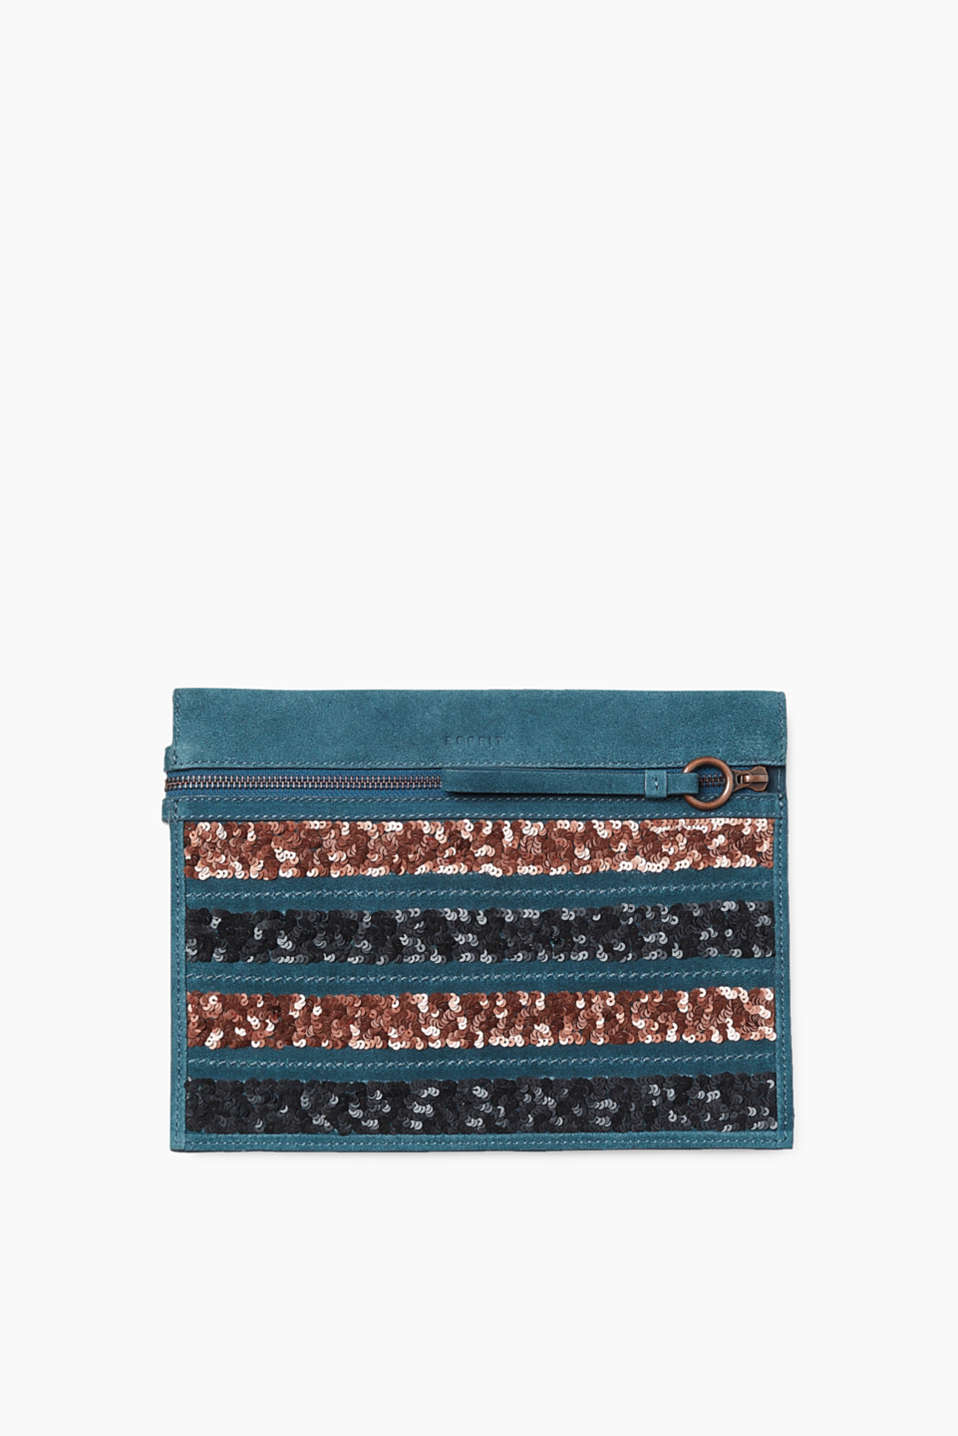 This flat shoulder bag in high-quality suede with sequinned stripes provides a touch of glamour